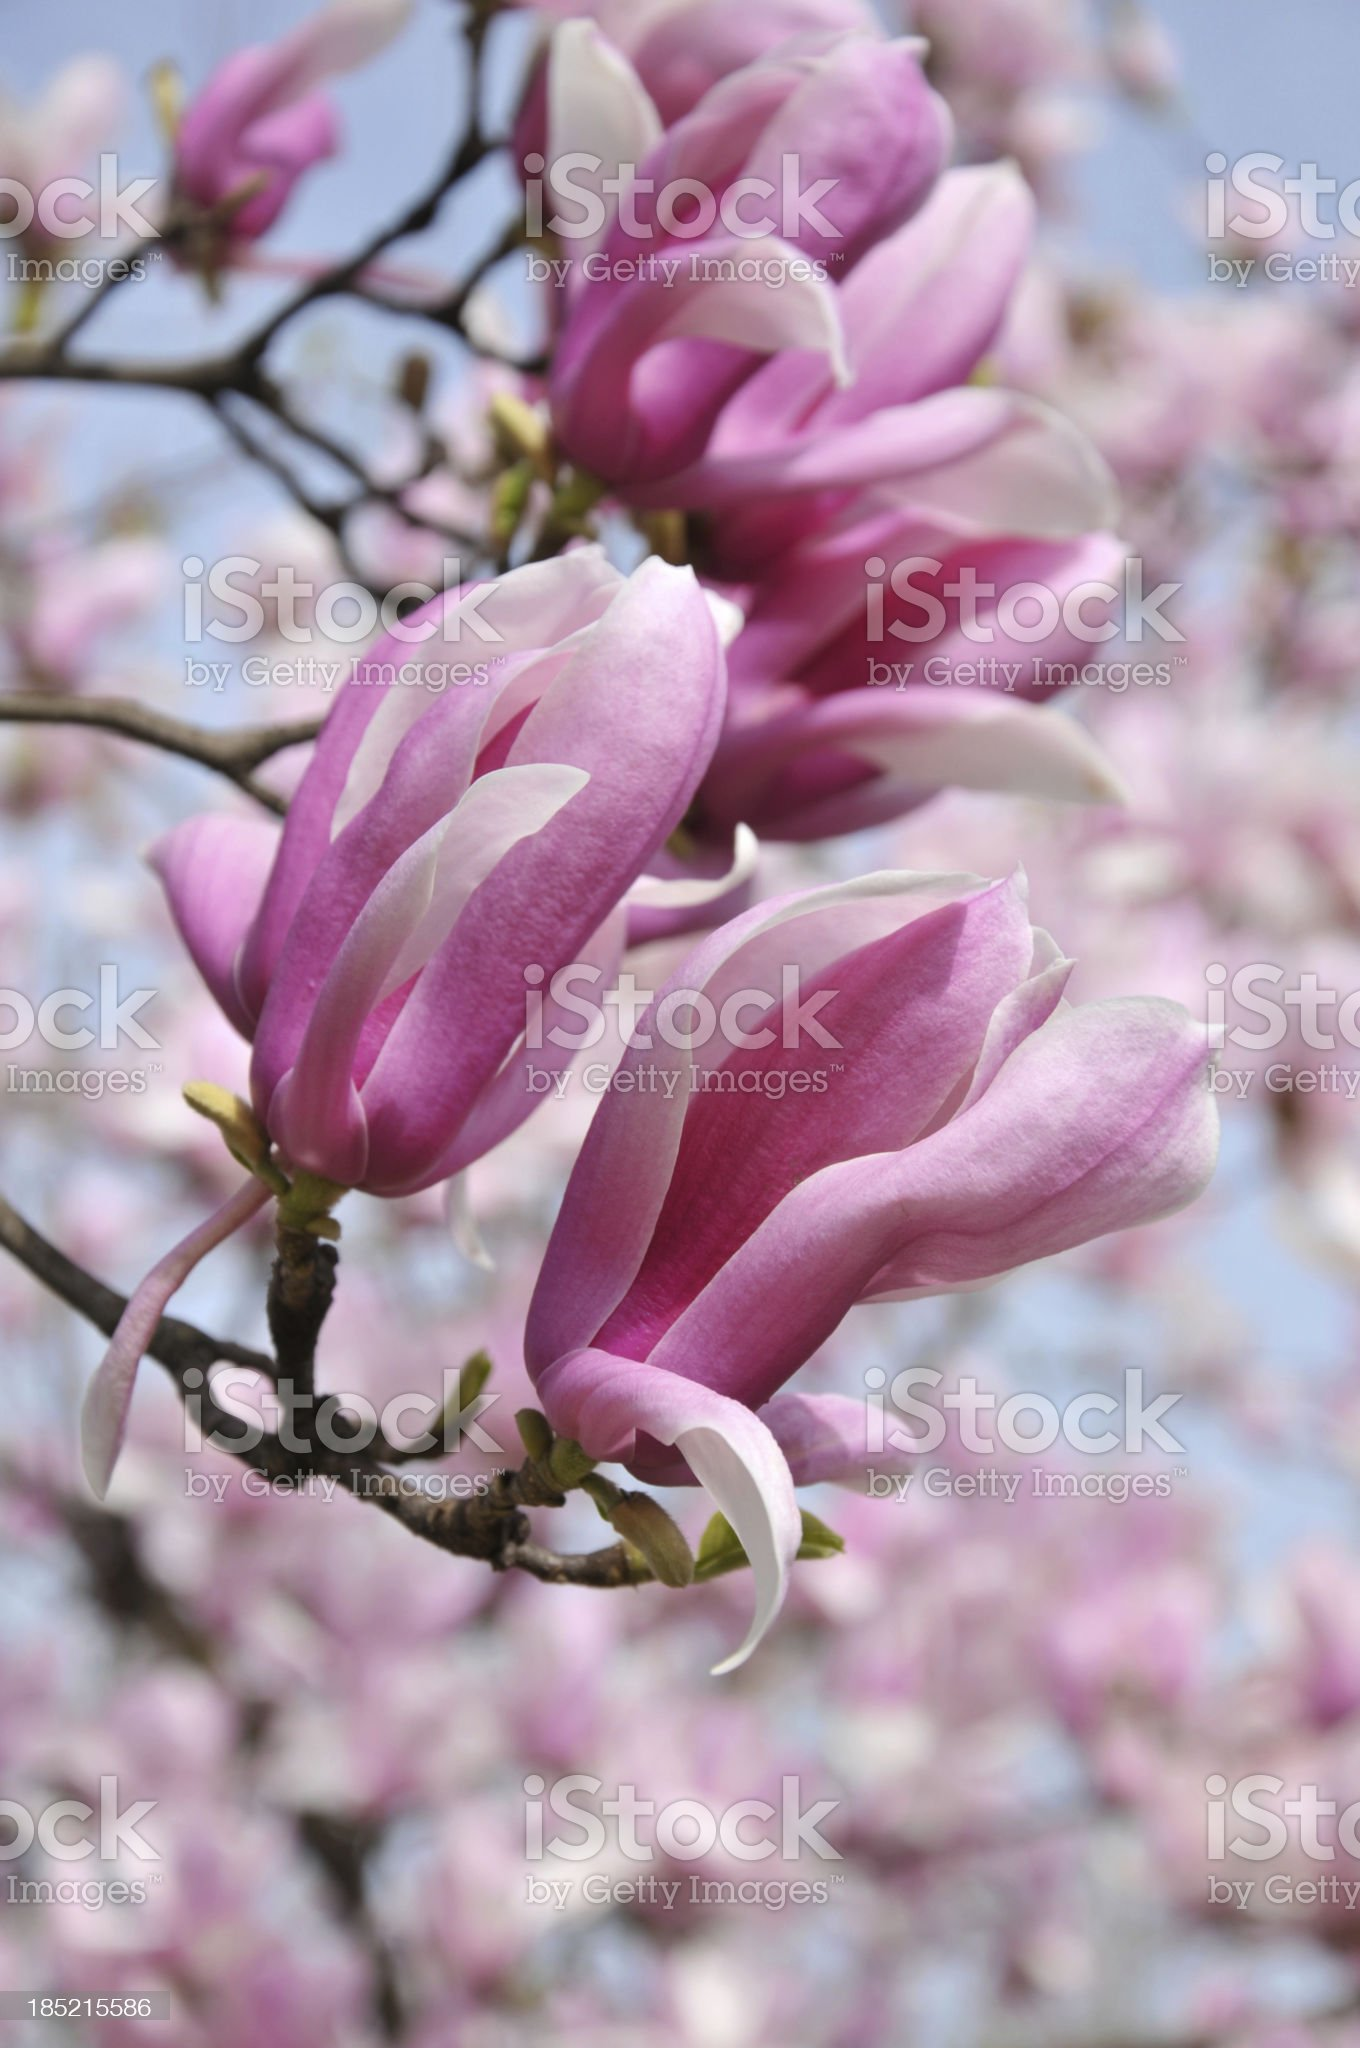 Magnolia flowers royalty-free stock photo